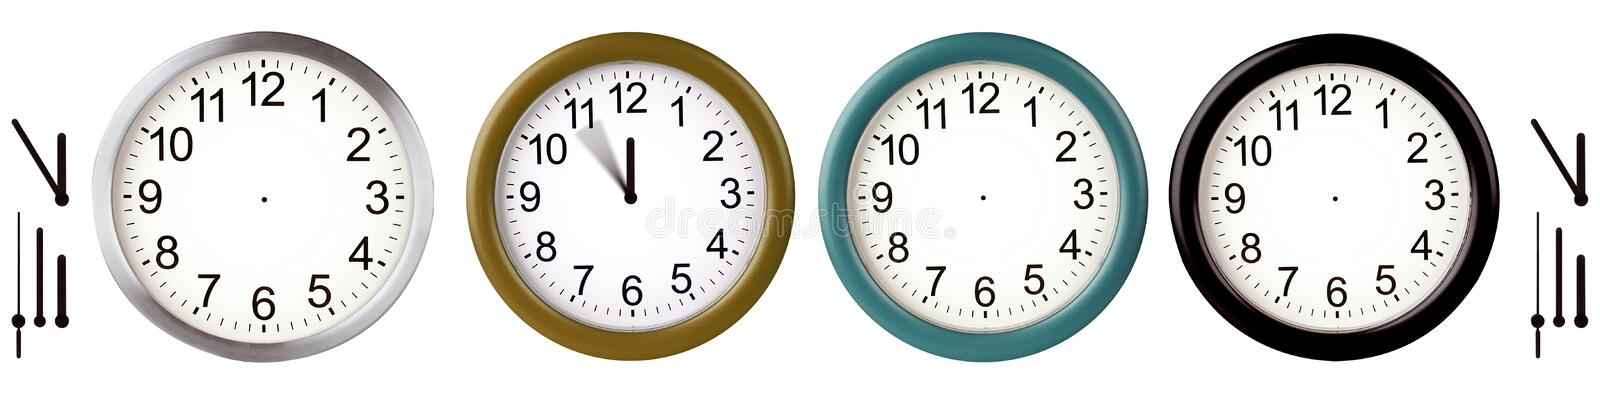 Wall clocks. Aluminum wall clocks isolated on white royalty free illustration